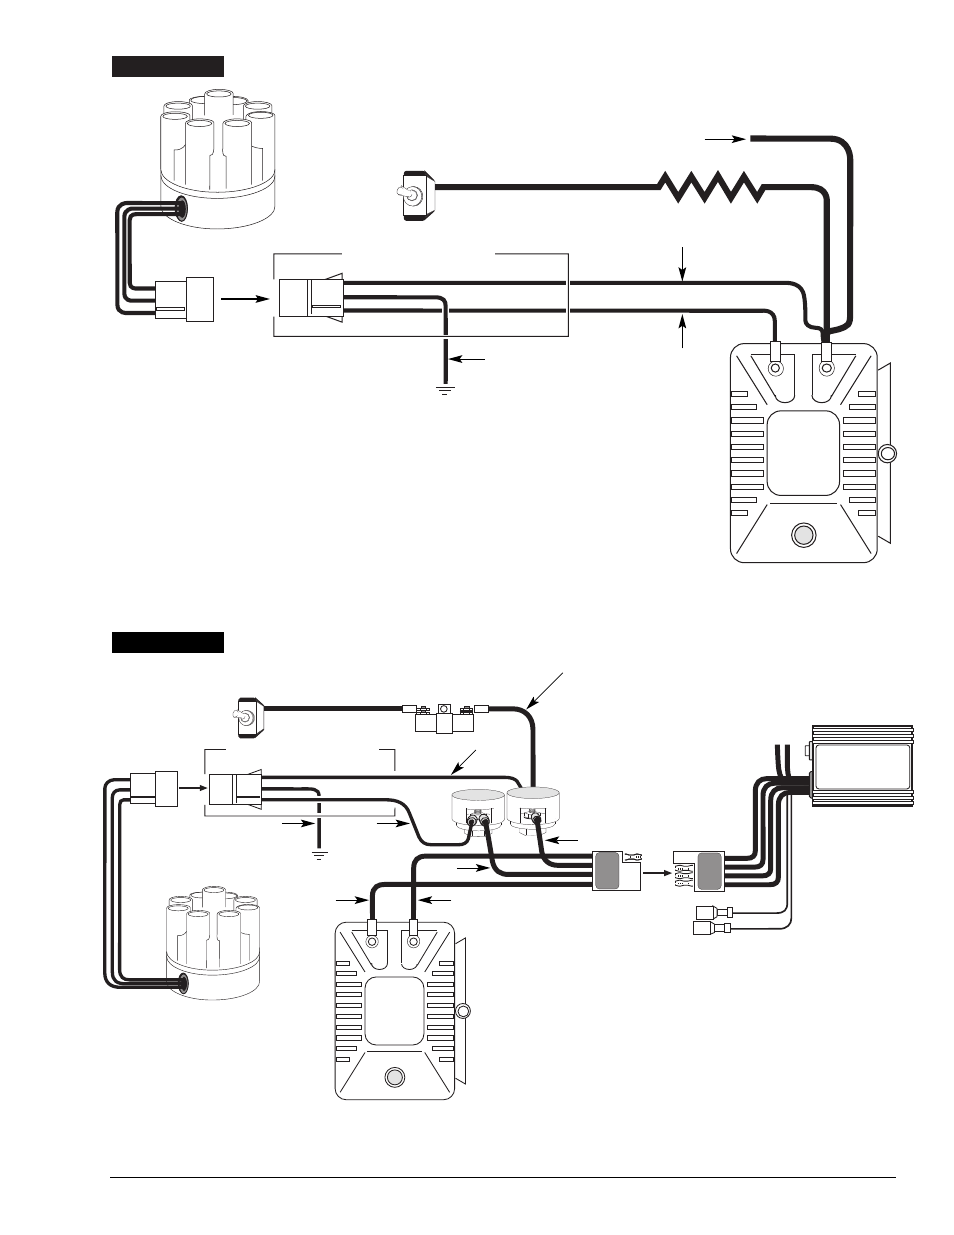 Mallory Comp 9000 Wiring Diagram Points To Libraries P Ignition Chevy Third Levelmallory Unilite For